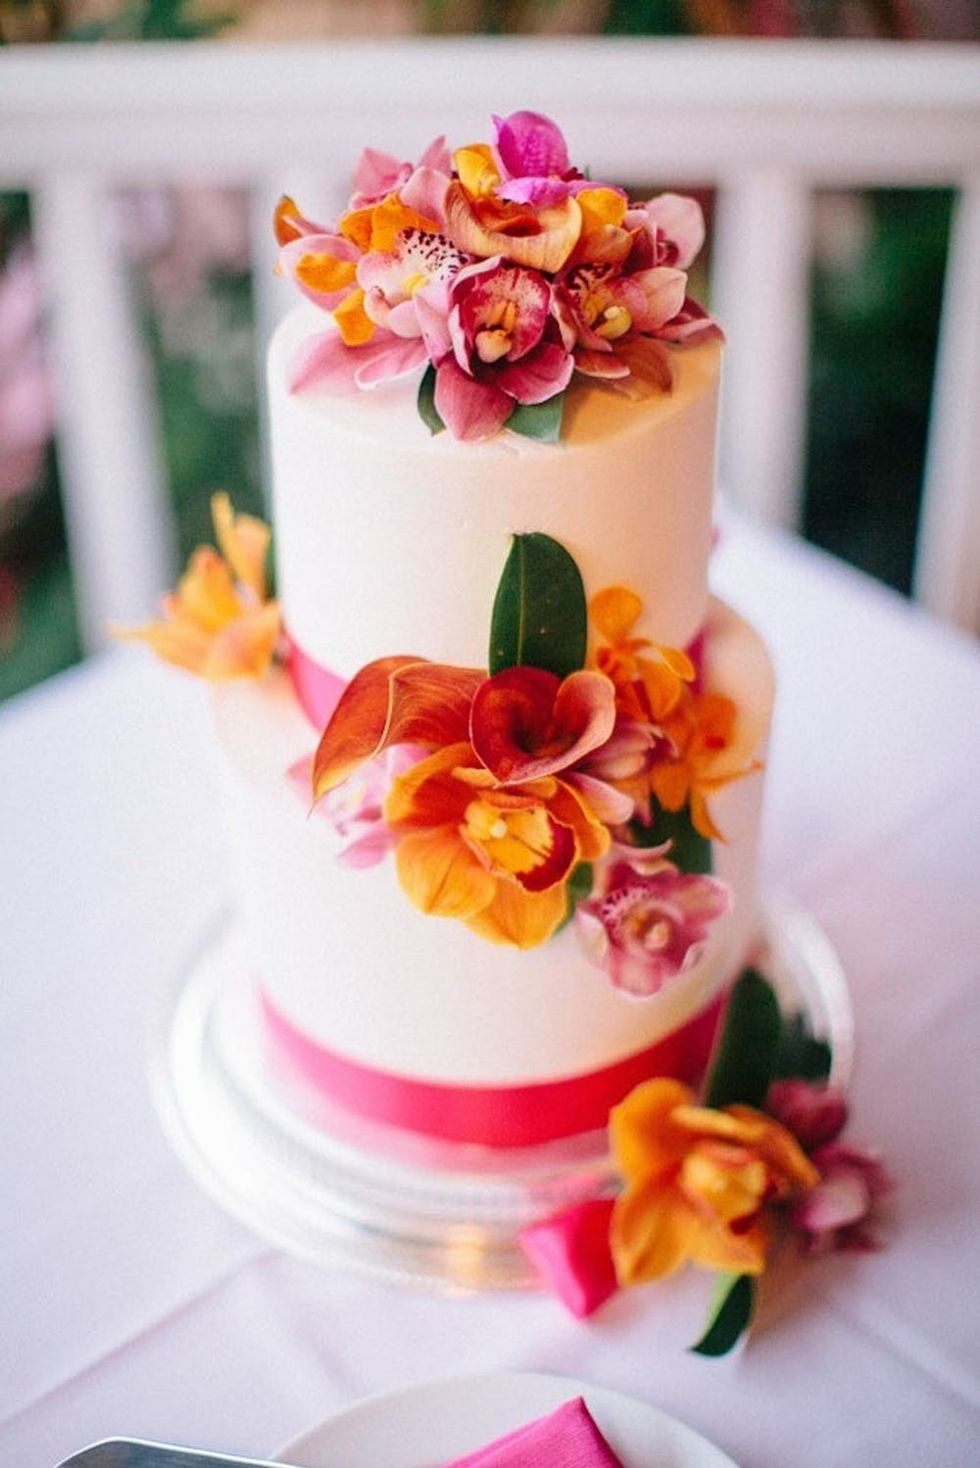 17 Tropical Wedding Cakes Perfect For Summer Weddings Brit Co Top it with sweet and tangy sugared cranberries for festive flavor. 17 tropical wedding cakes perfect for